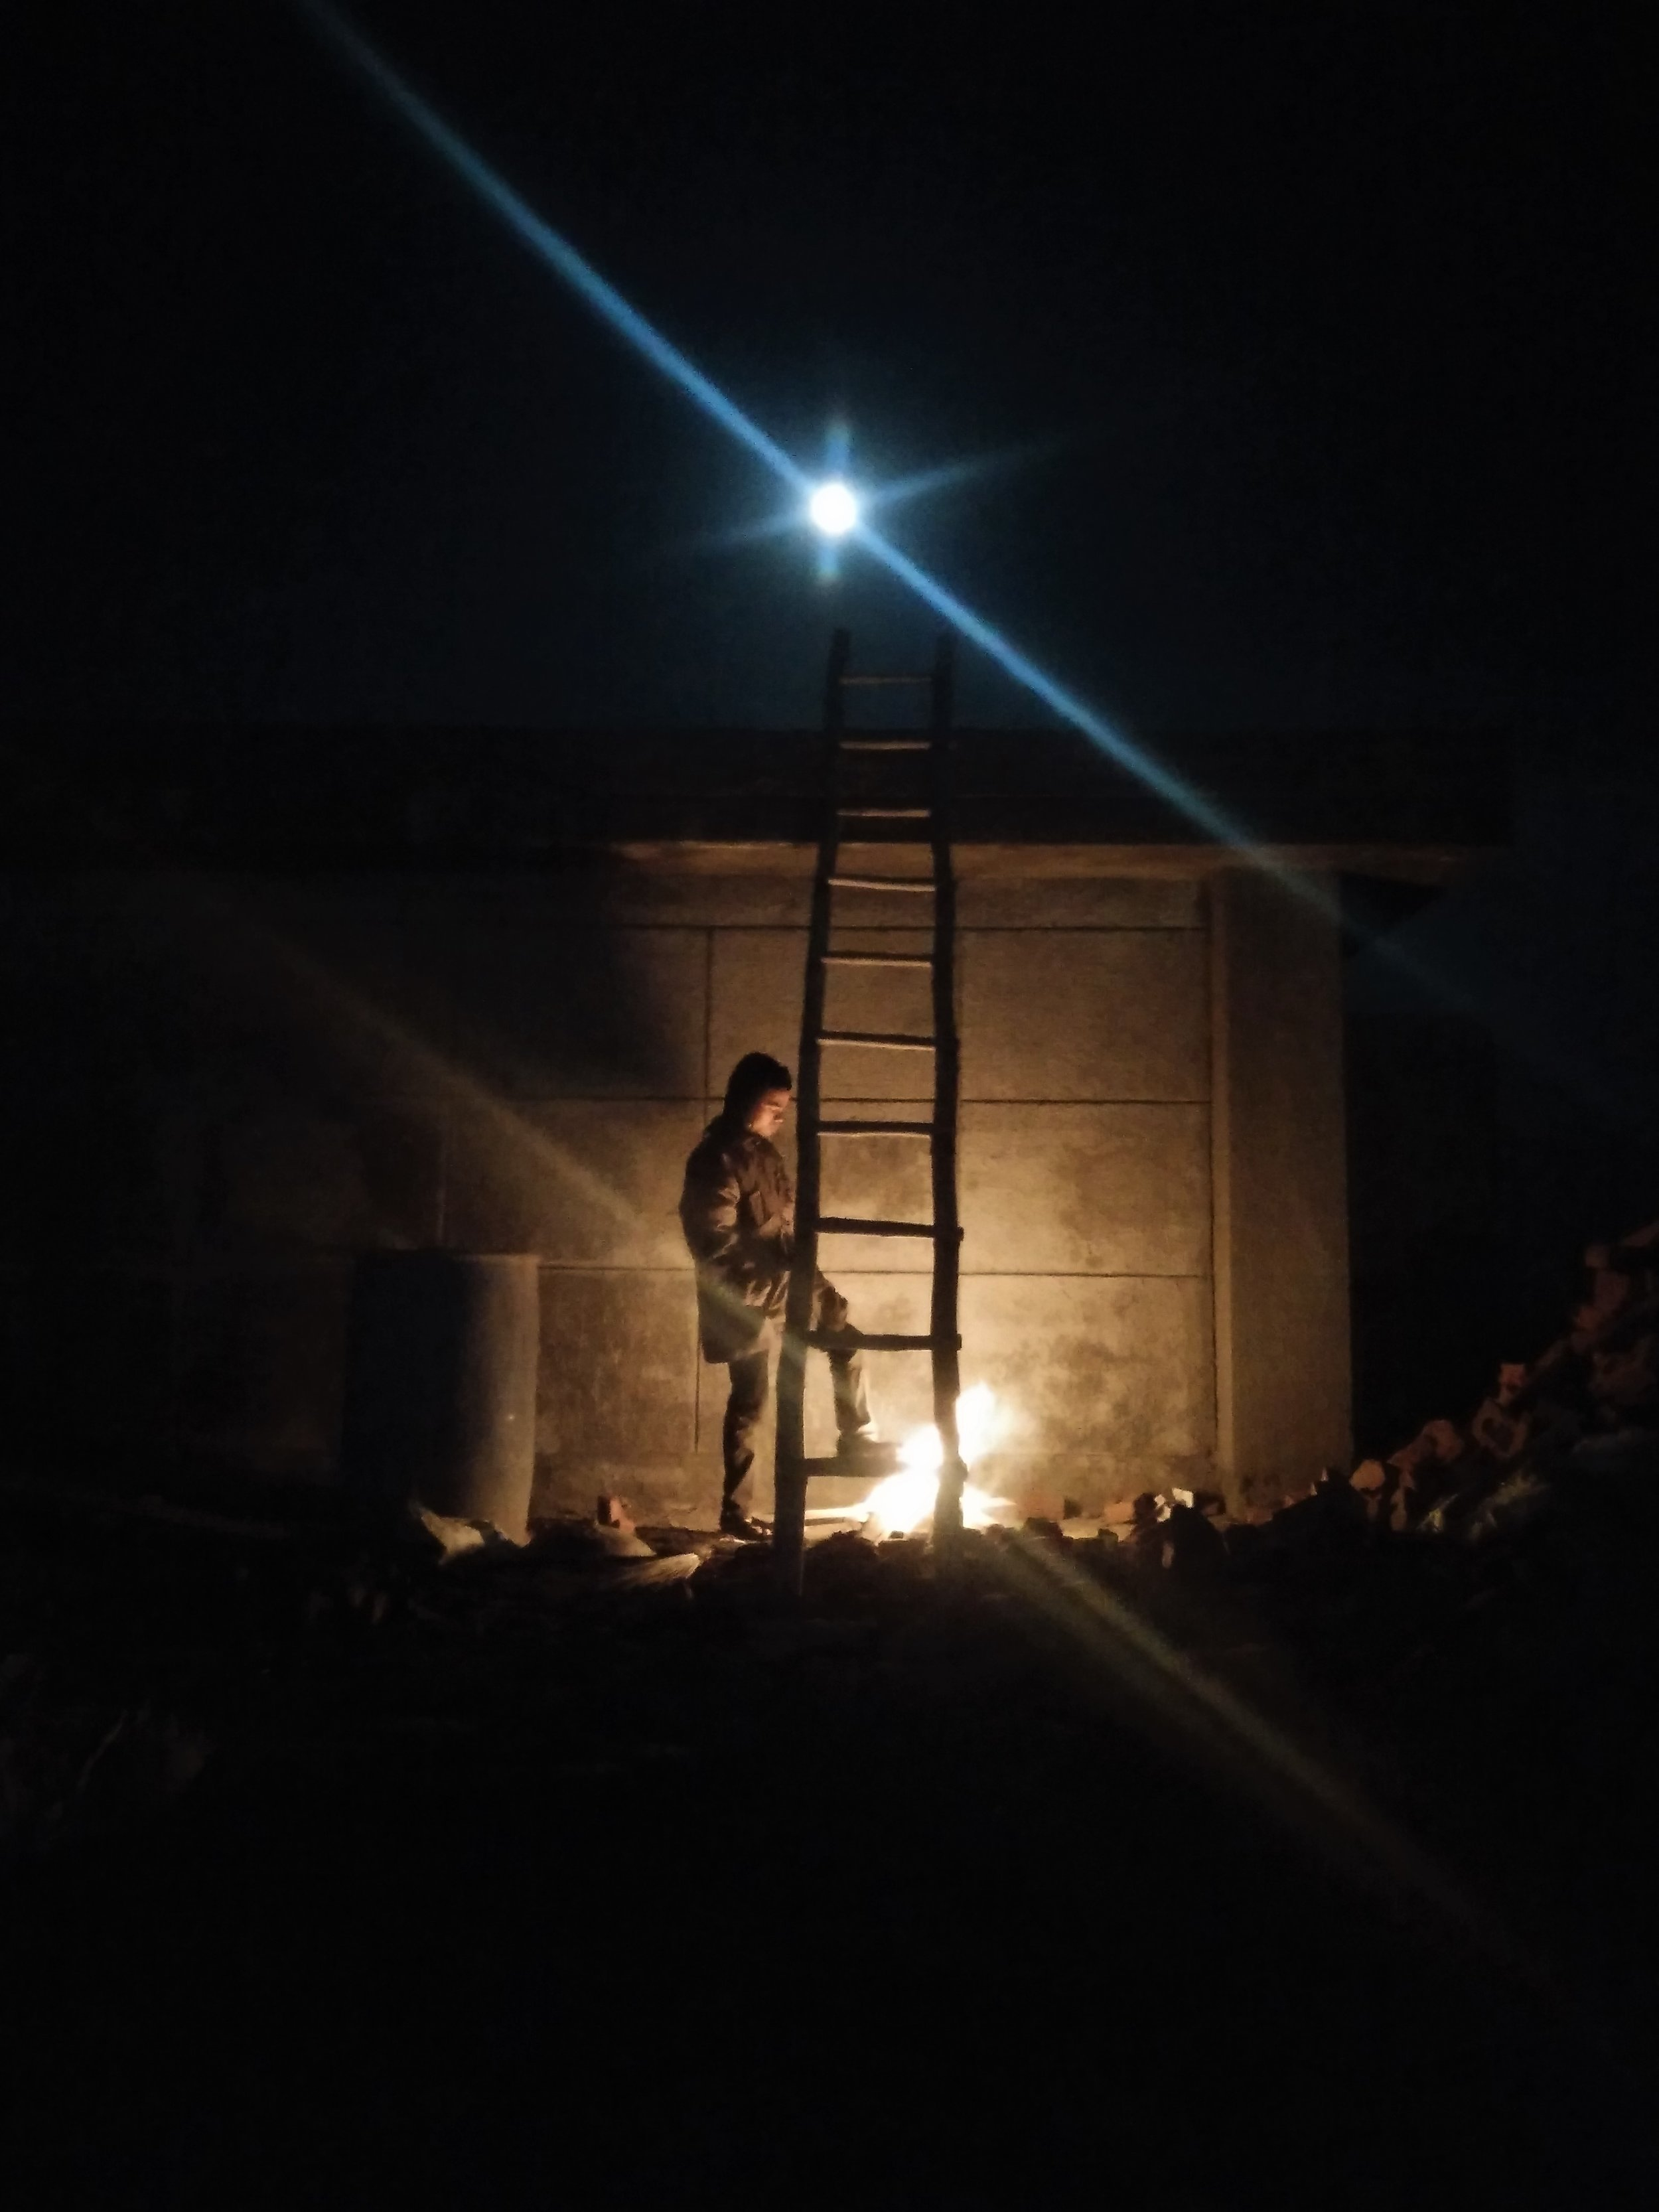 Migrant workers construct roof at midnight in December at freezing temperature in Poonchh. Credit: Ankur Jayaswal